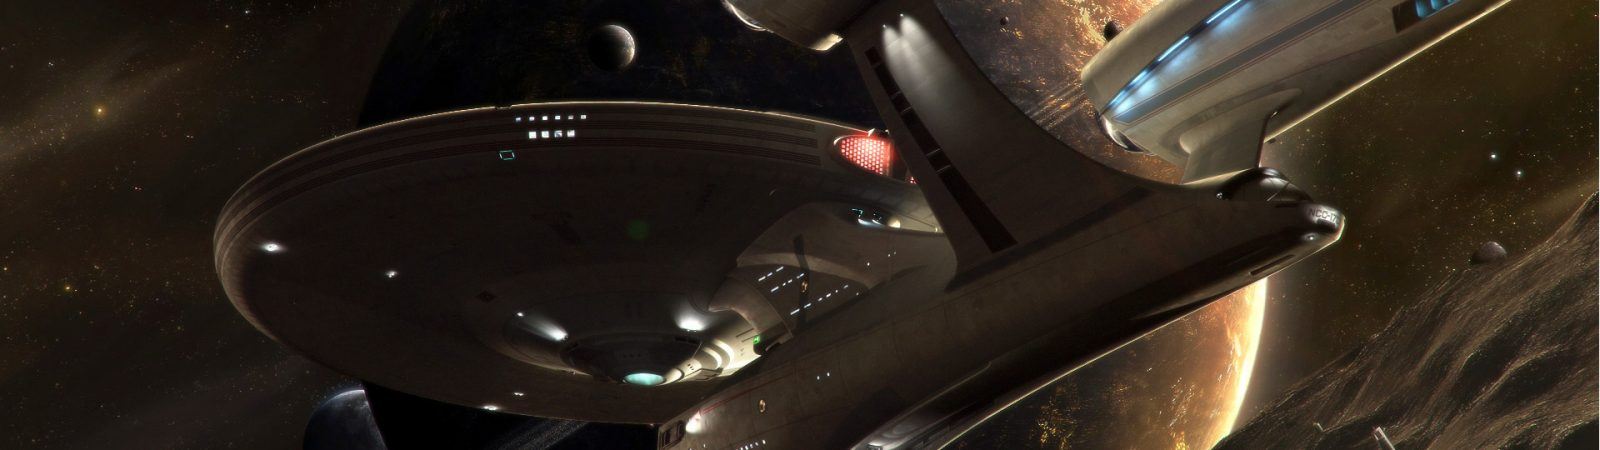 New download: Enterprise D